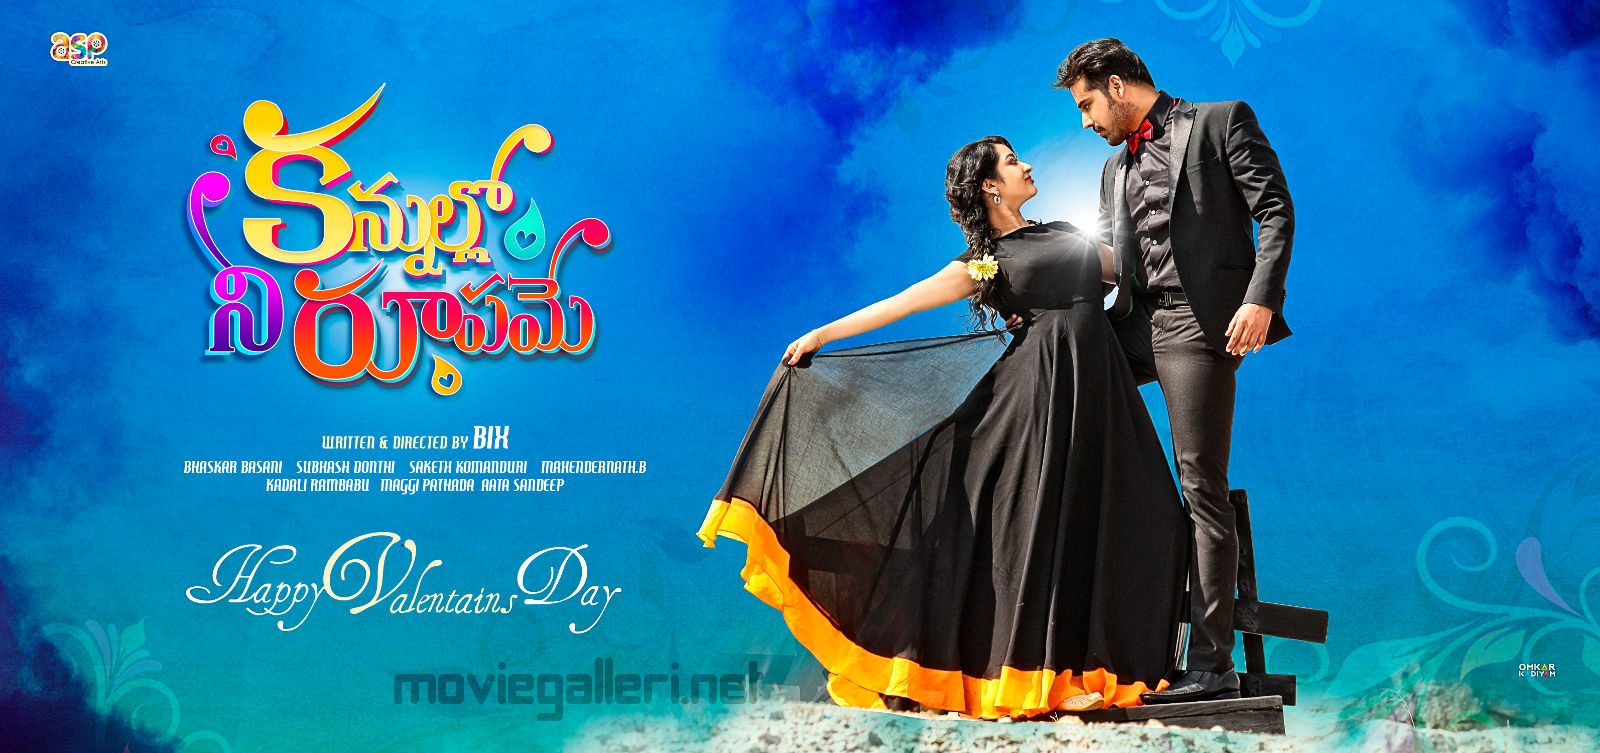 Nandu & Tejaswini Prakash Kannullo Nee Roopame Movie Valentine's Day Wishes Wallpaper